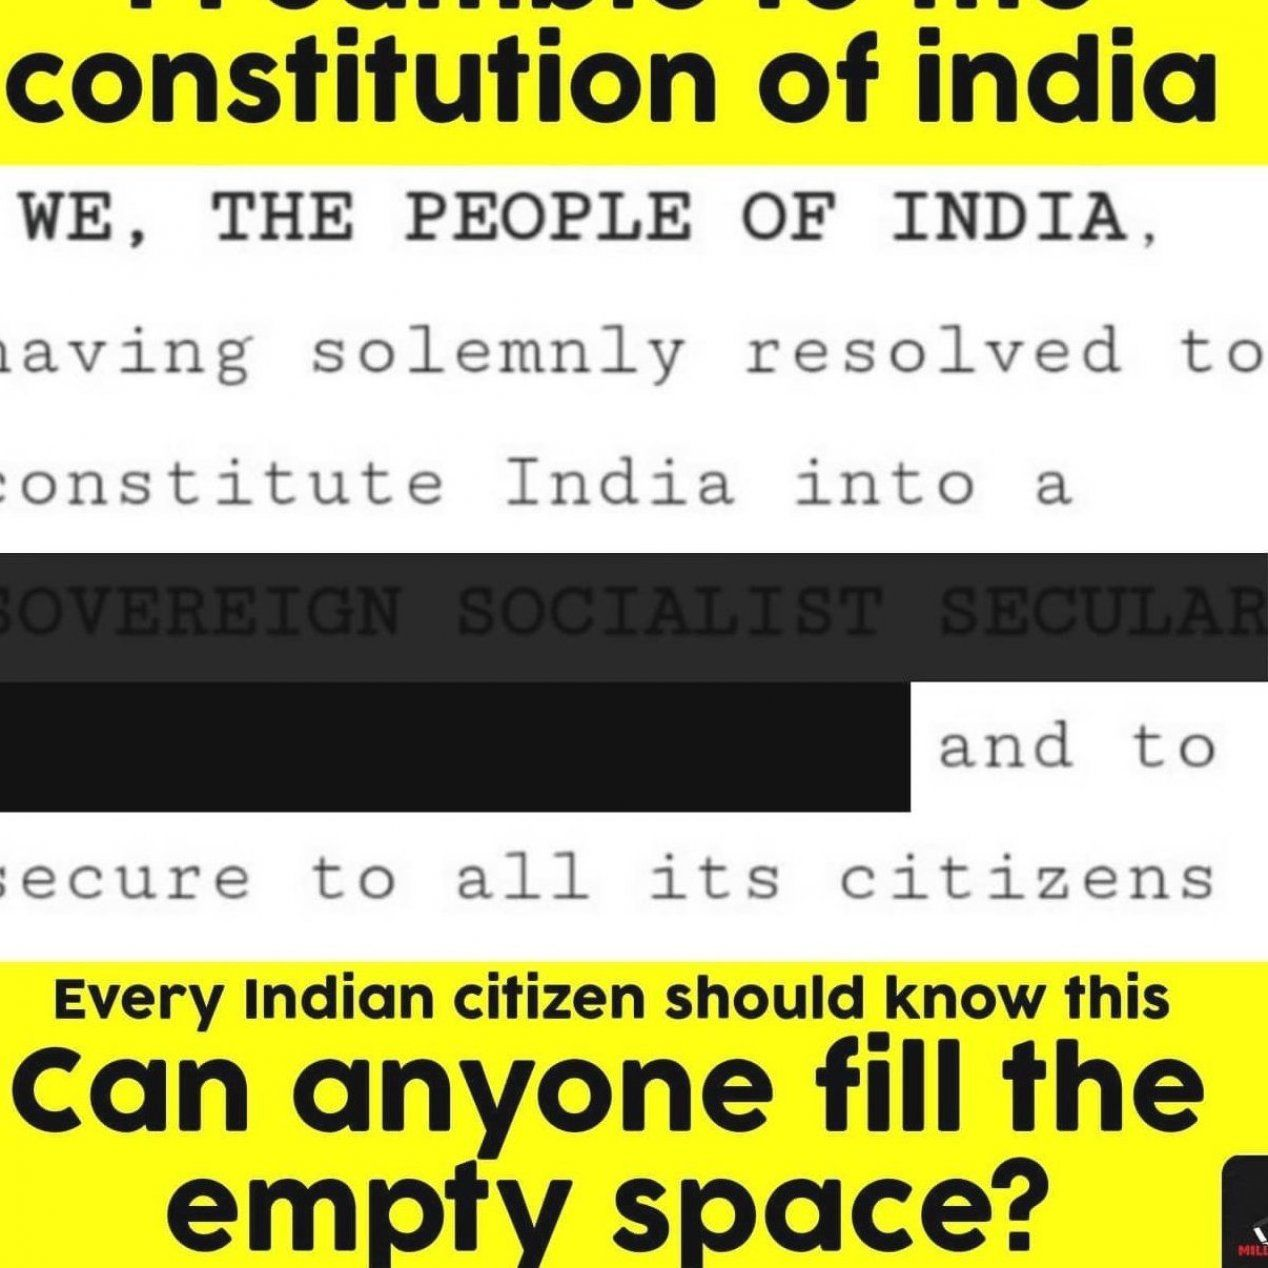 Every Indian Citizen Should Know The Preamble To Constitution Of India Clue For Empty Space I Sssdr Millio People Socialist Discus